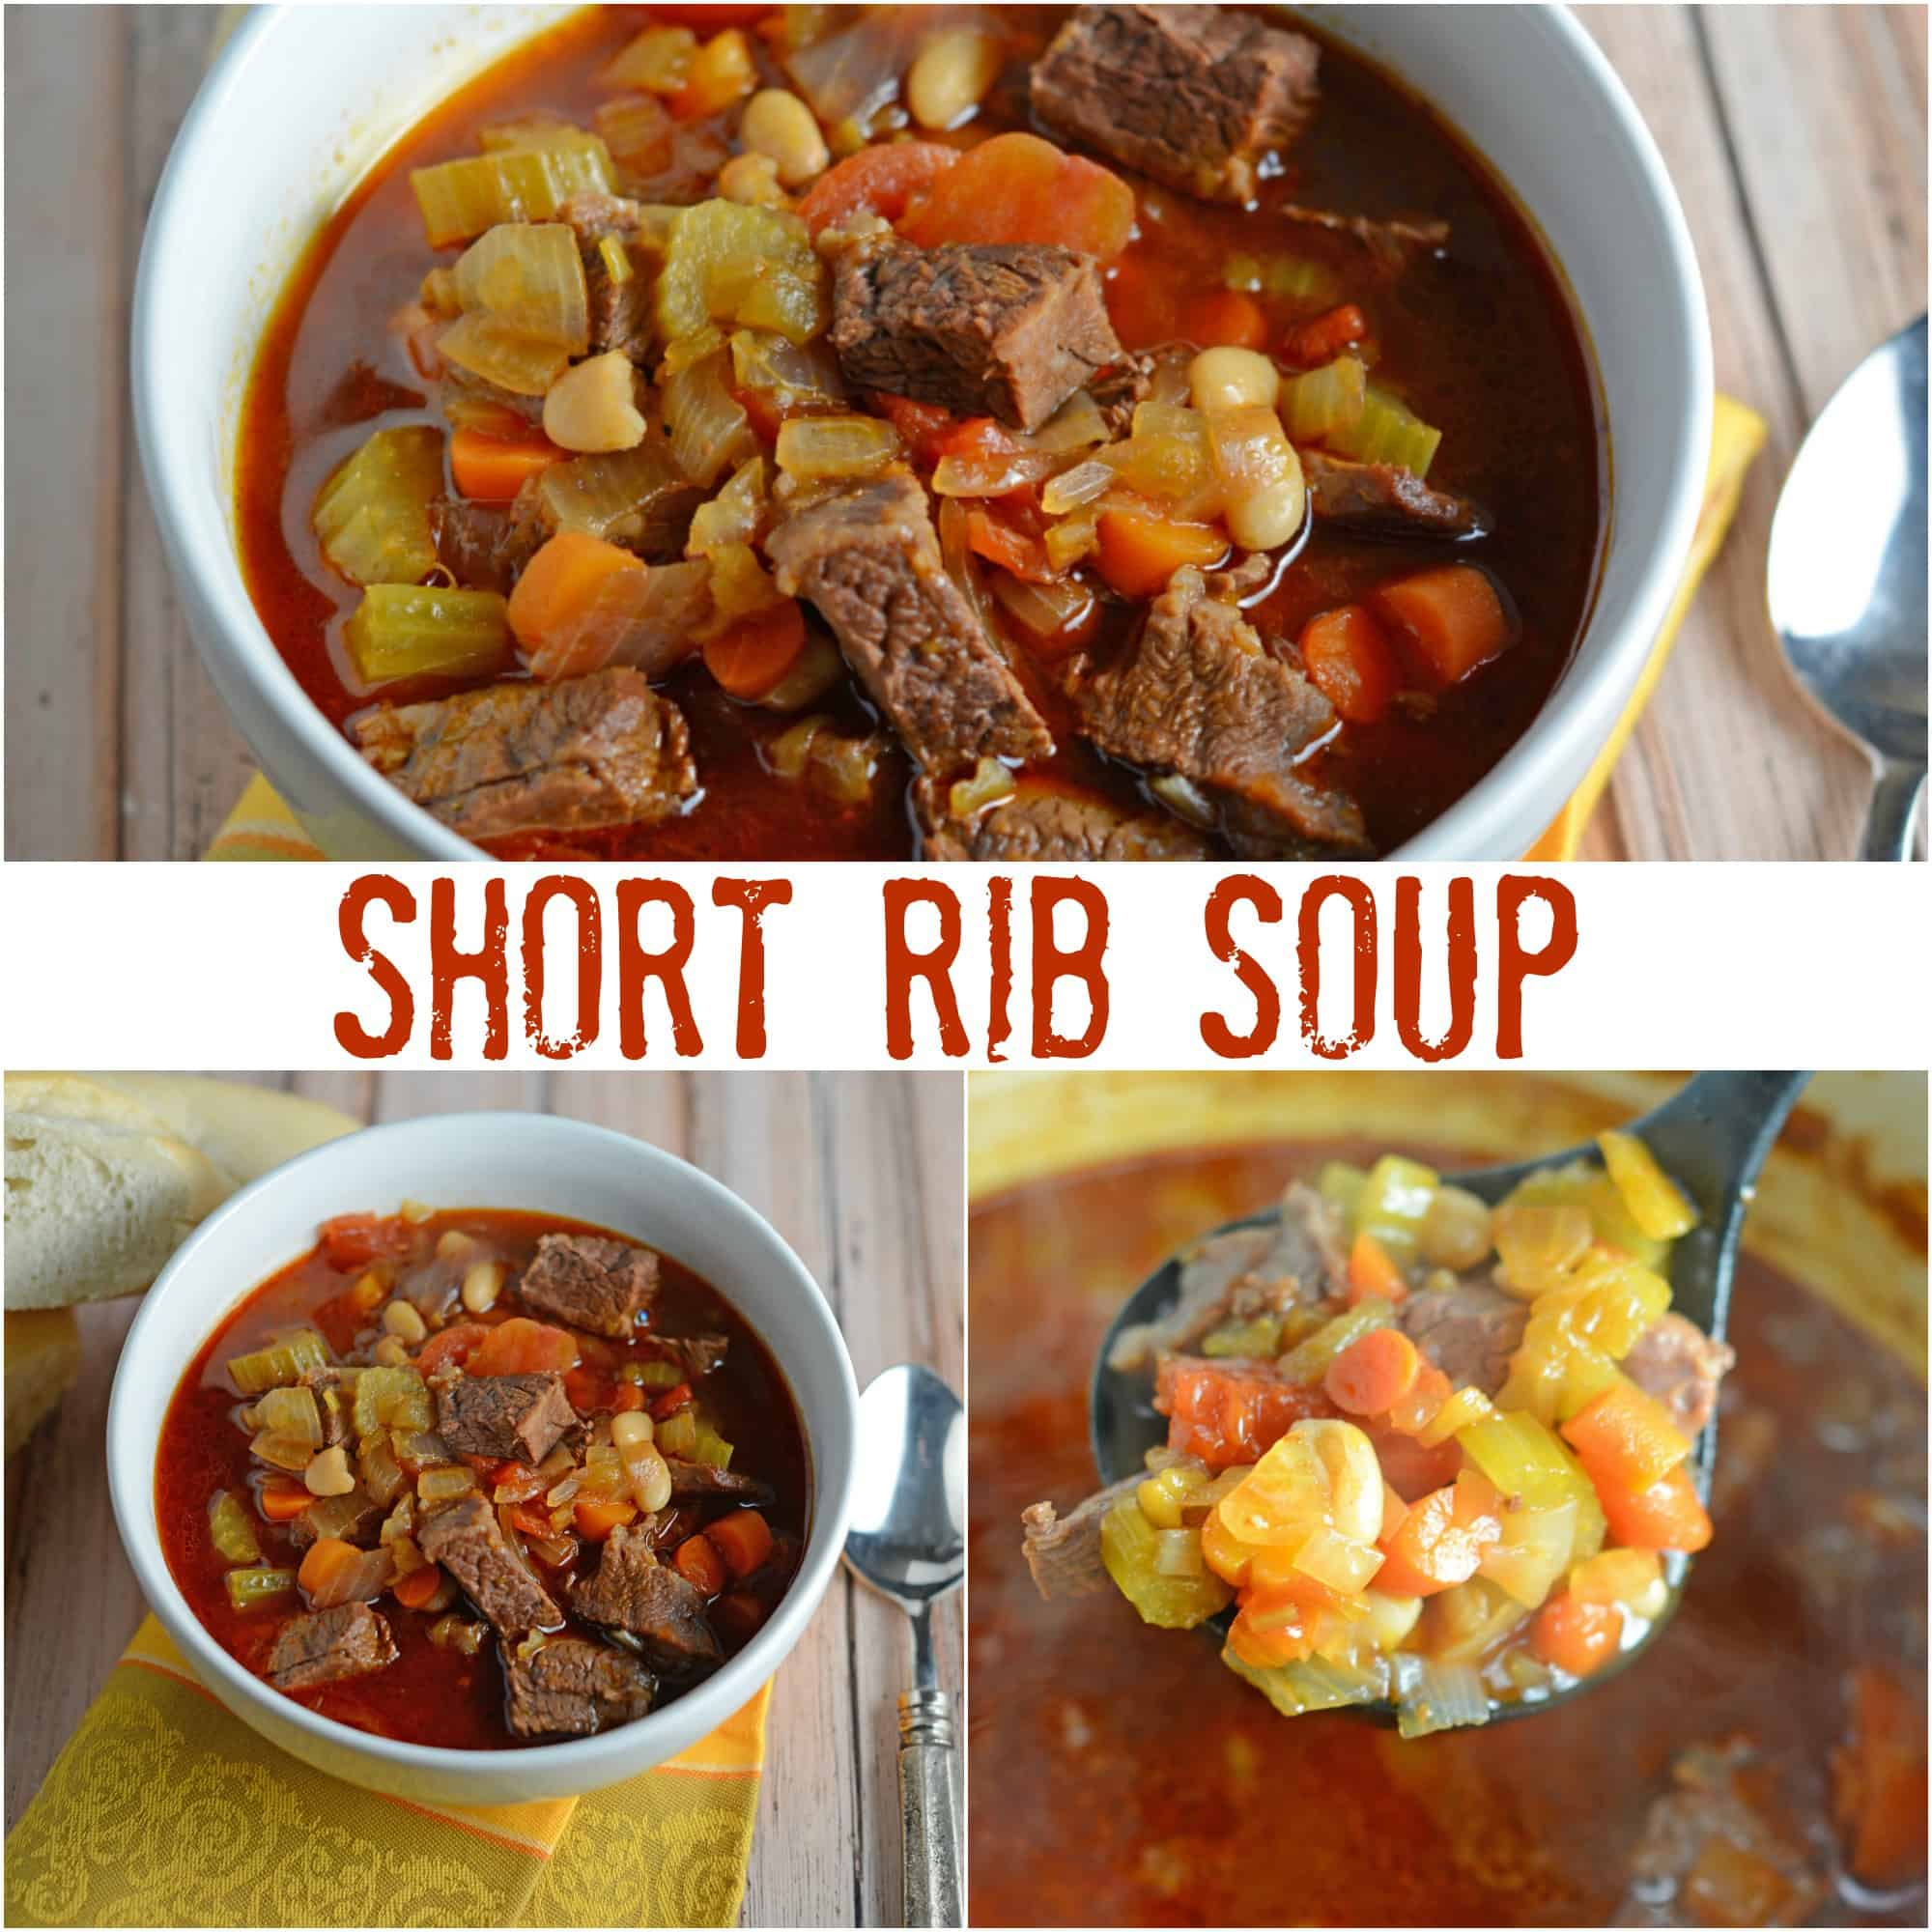 Short Rib Soup Recipe- a hearty comforting soup made with vegetables and shredded short ribs. Also known as Booyah in parts of the US. This soup can be served as an appetizer or entree and freezes well.